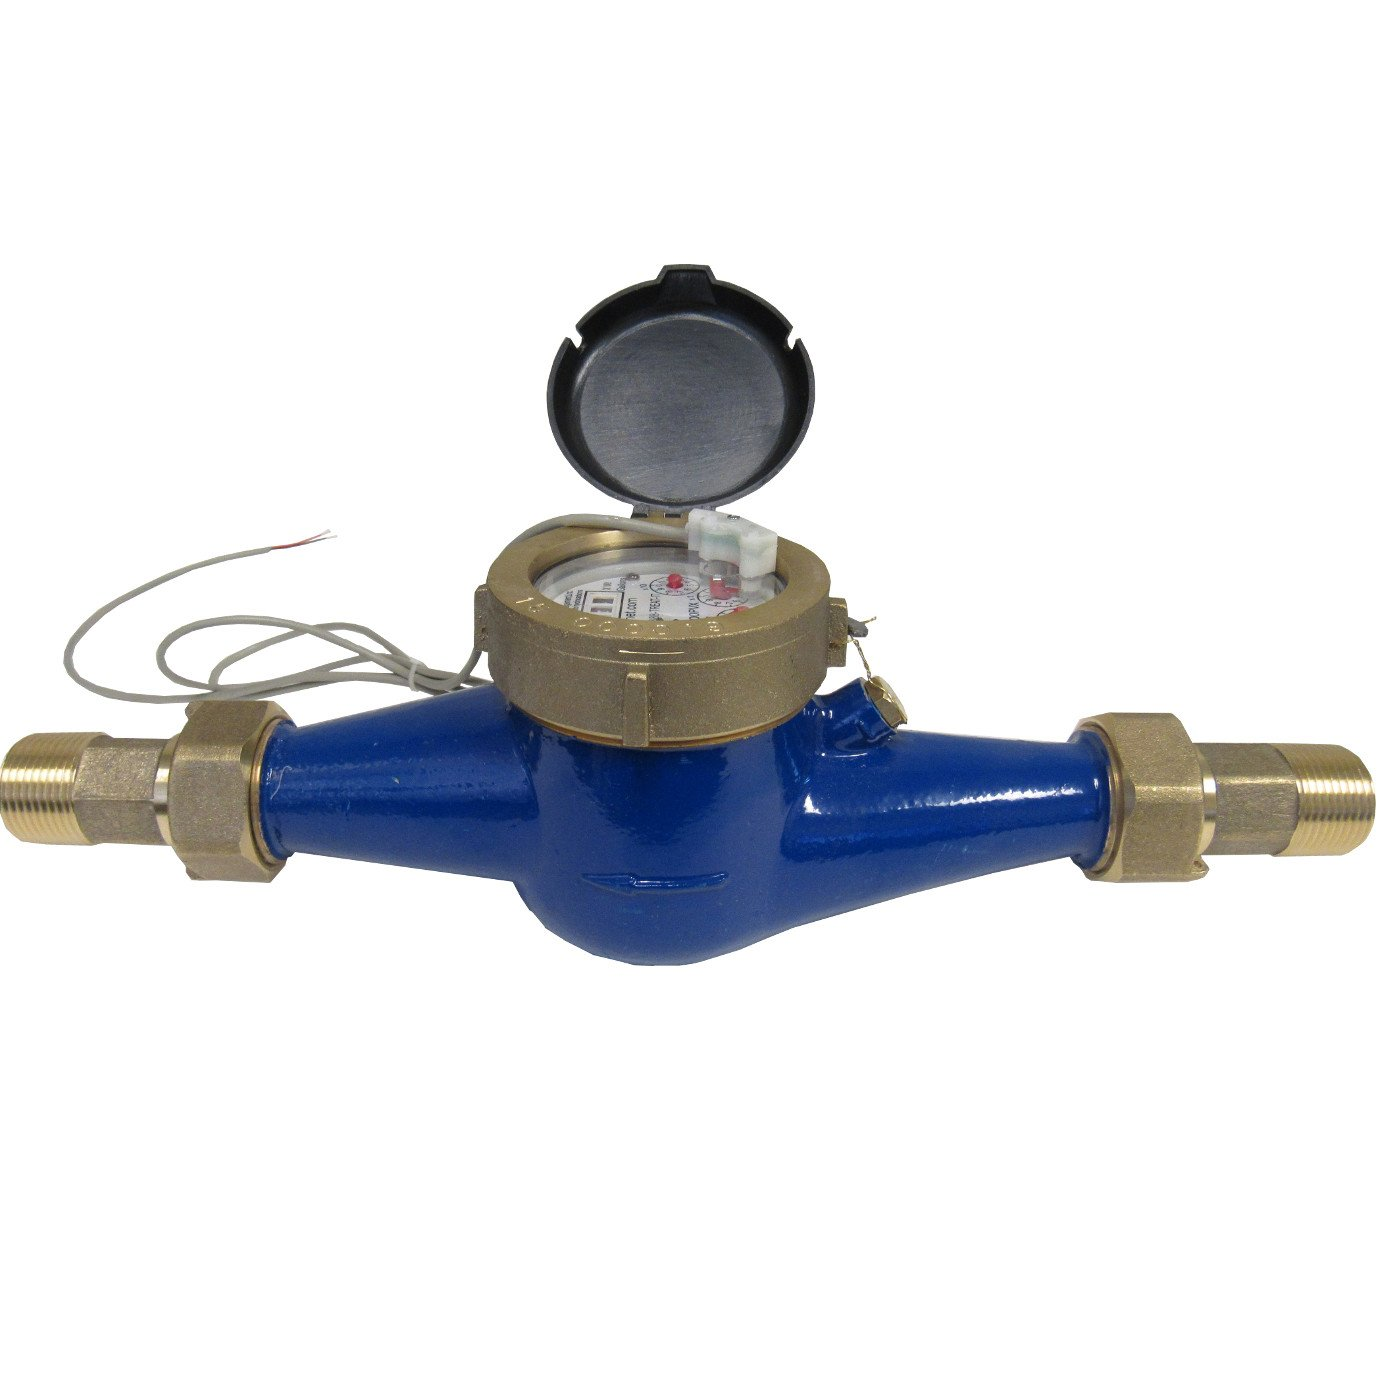 PRM 2 INCH NPT MULTI-JET WATER METER WITH PULSE OUTPUT